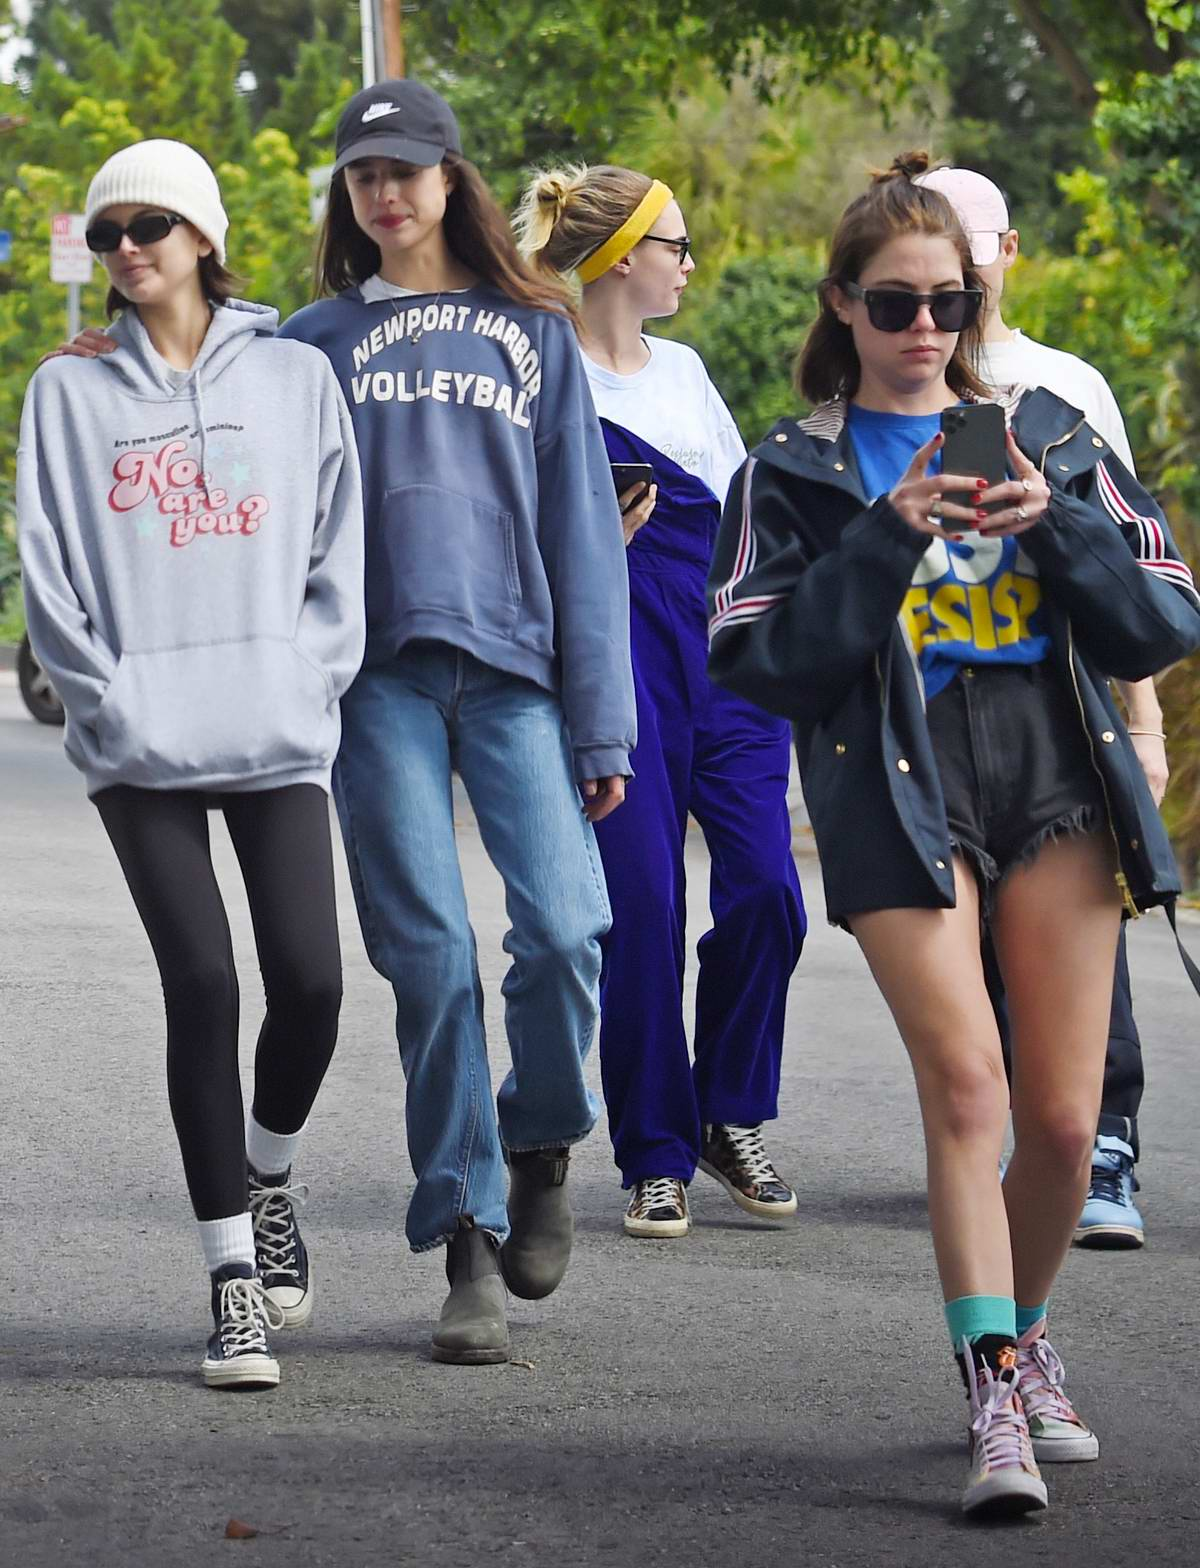 Cara Delevingne, Ashley Benson, Kaia Gerber, and Margaret Qualley head out for a walk and some fresh air in Los Angeles